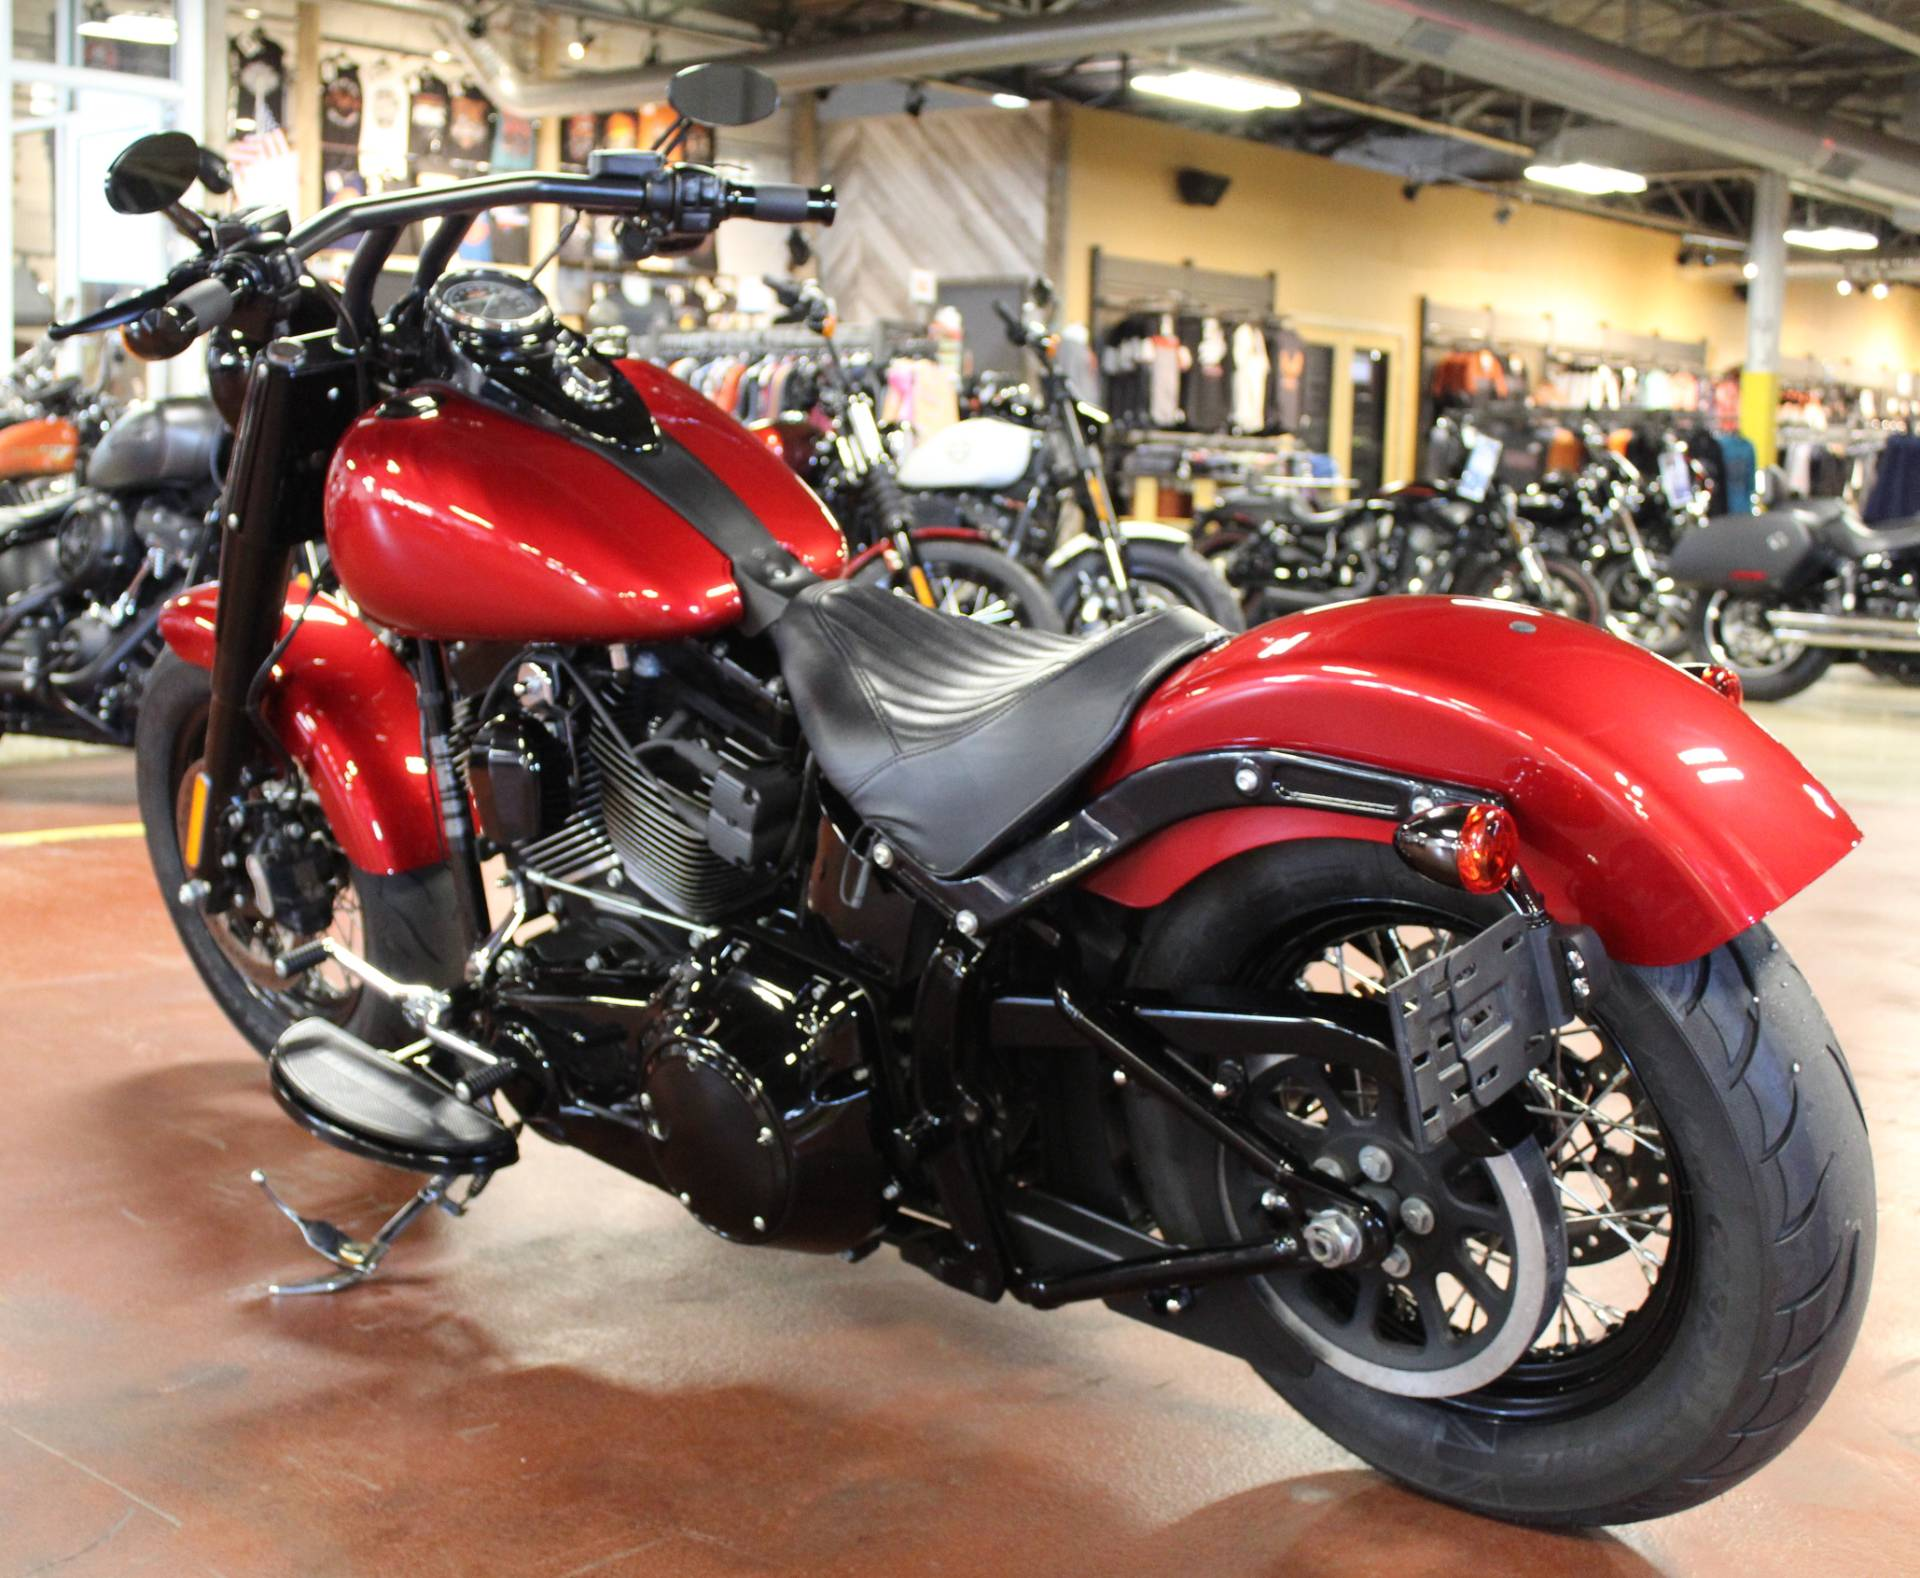 2017 Harley-Davidson Softail Slim® S in New London, Connecticut - Photo 6